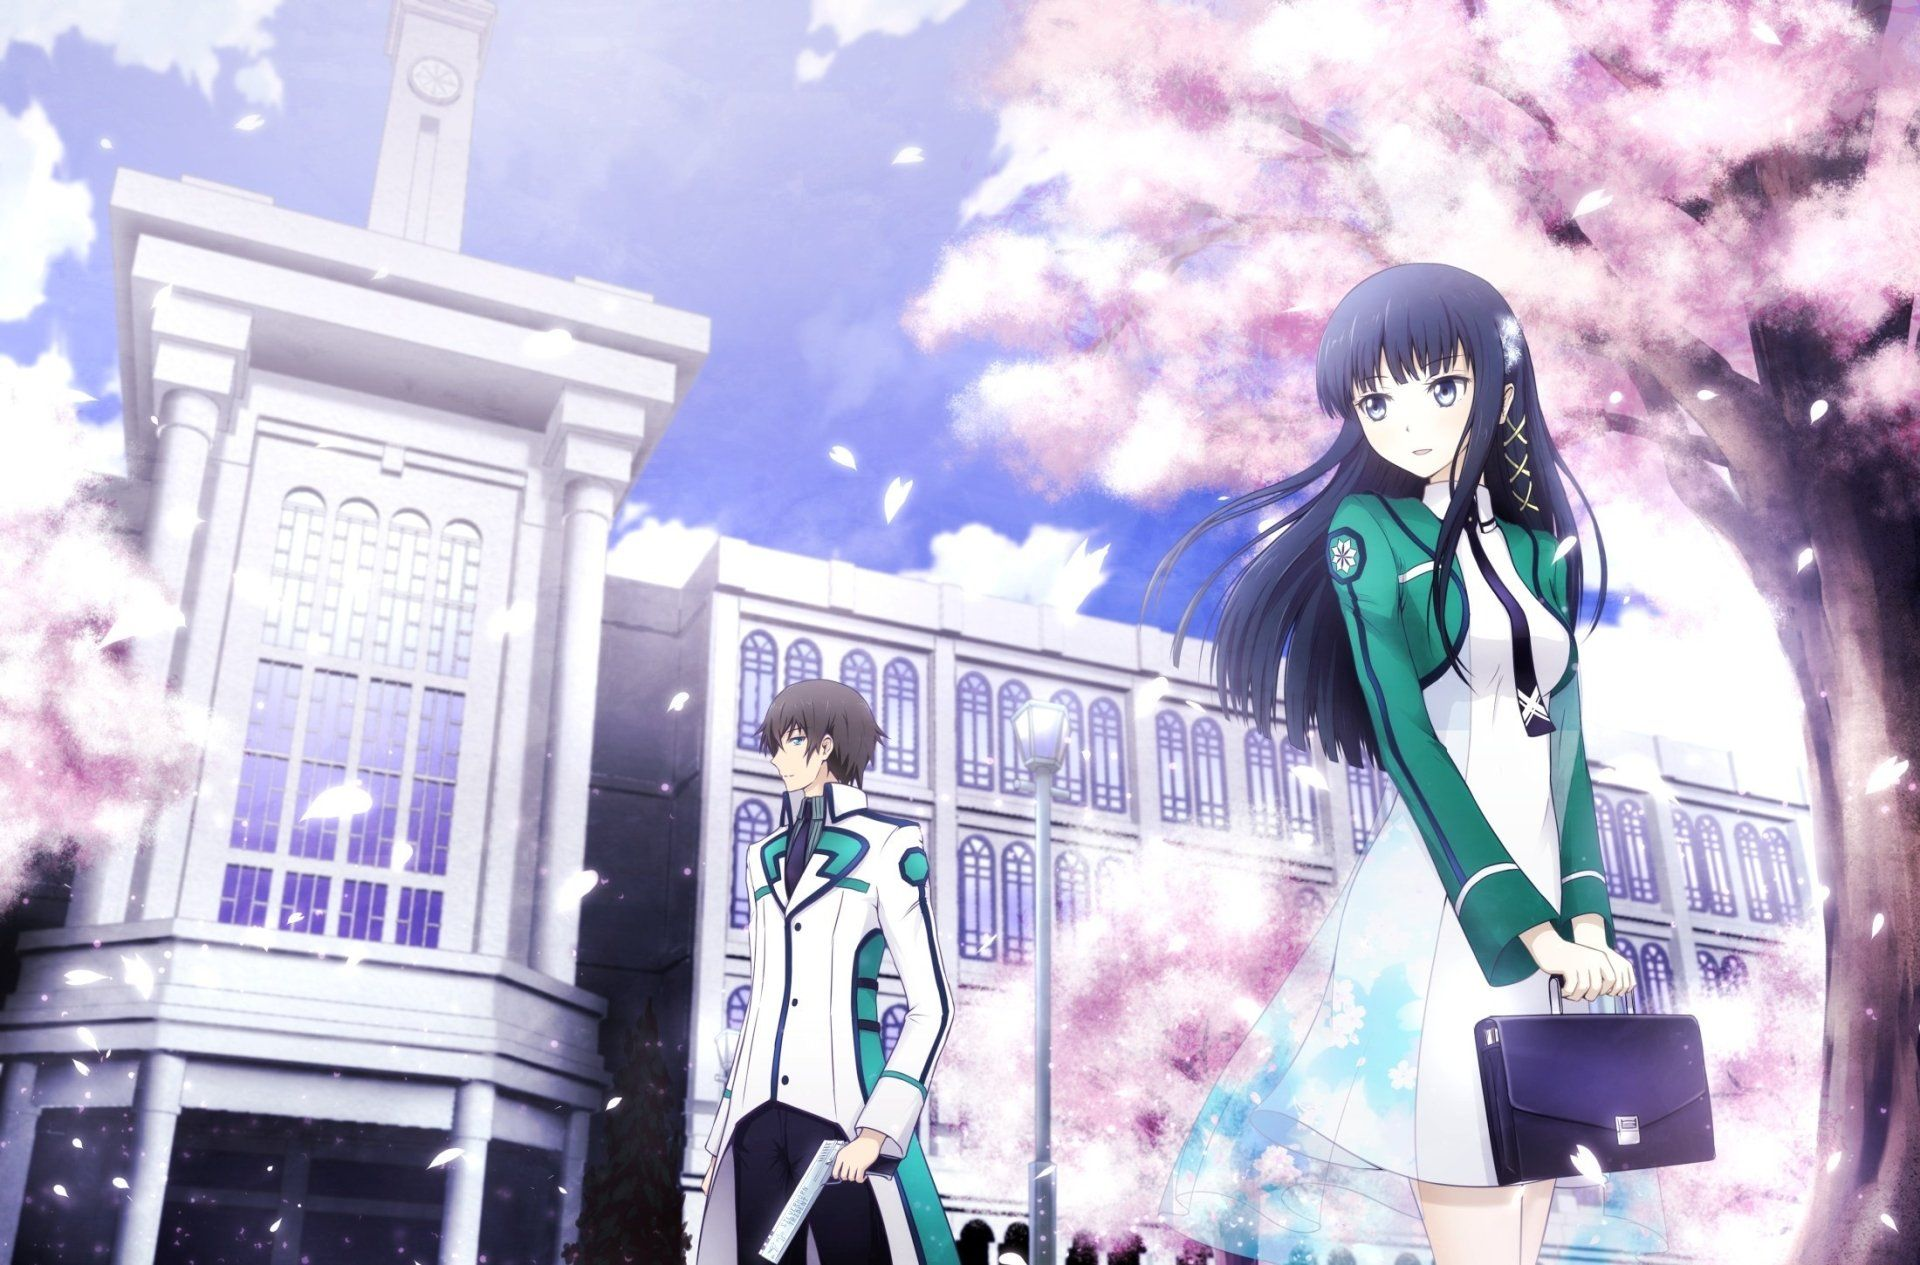 2200x1450 The Irregular at Magic High School Imagem de